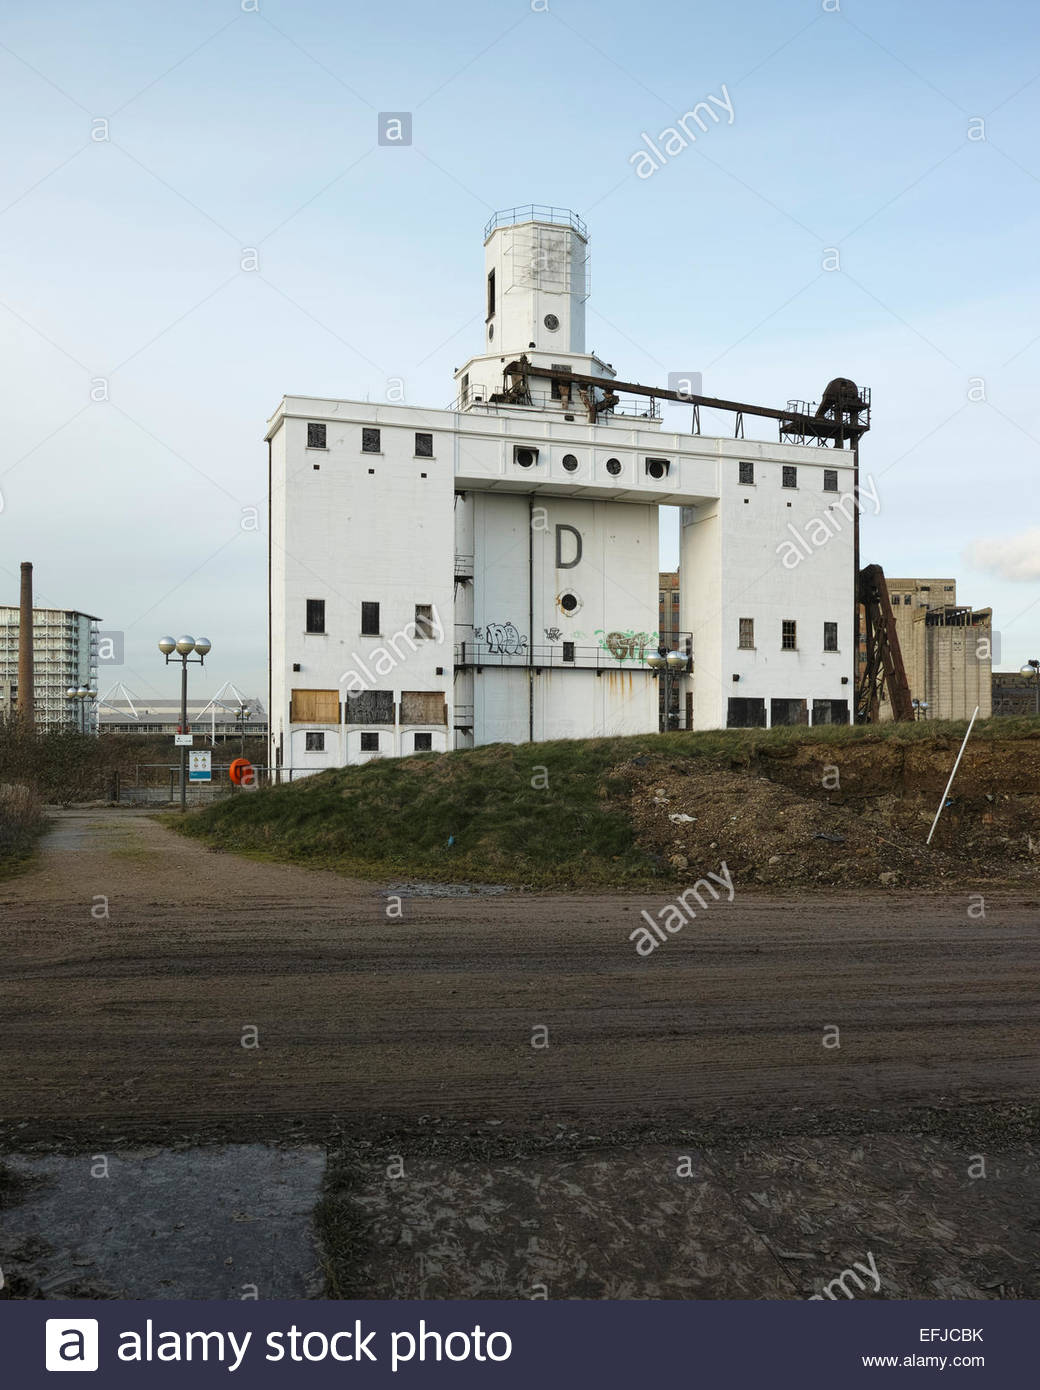 Silo D (concrete grain store) no longer in use since the closure of the Royal Docks: West Silvertown, London. - Stock Image